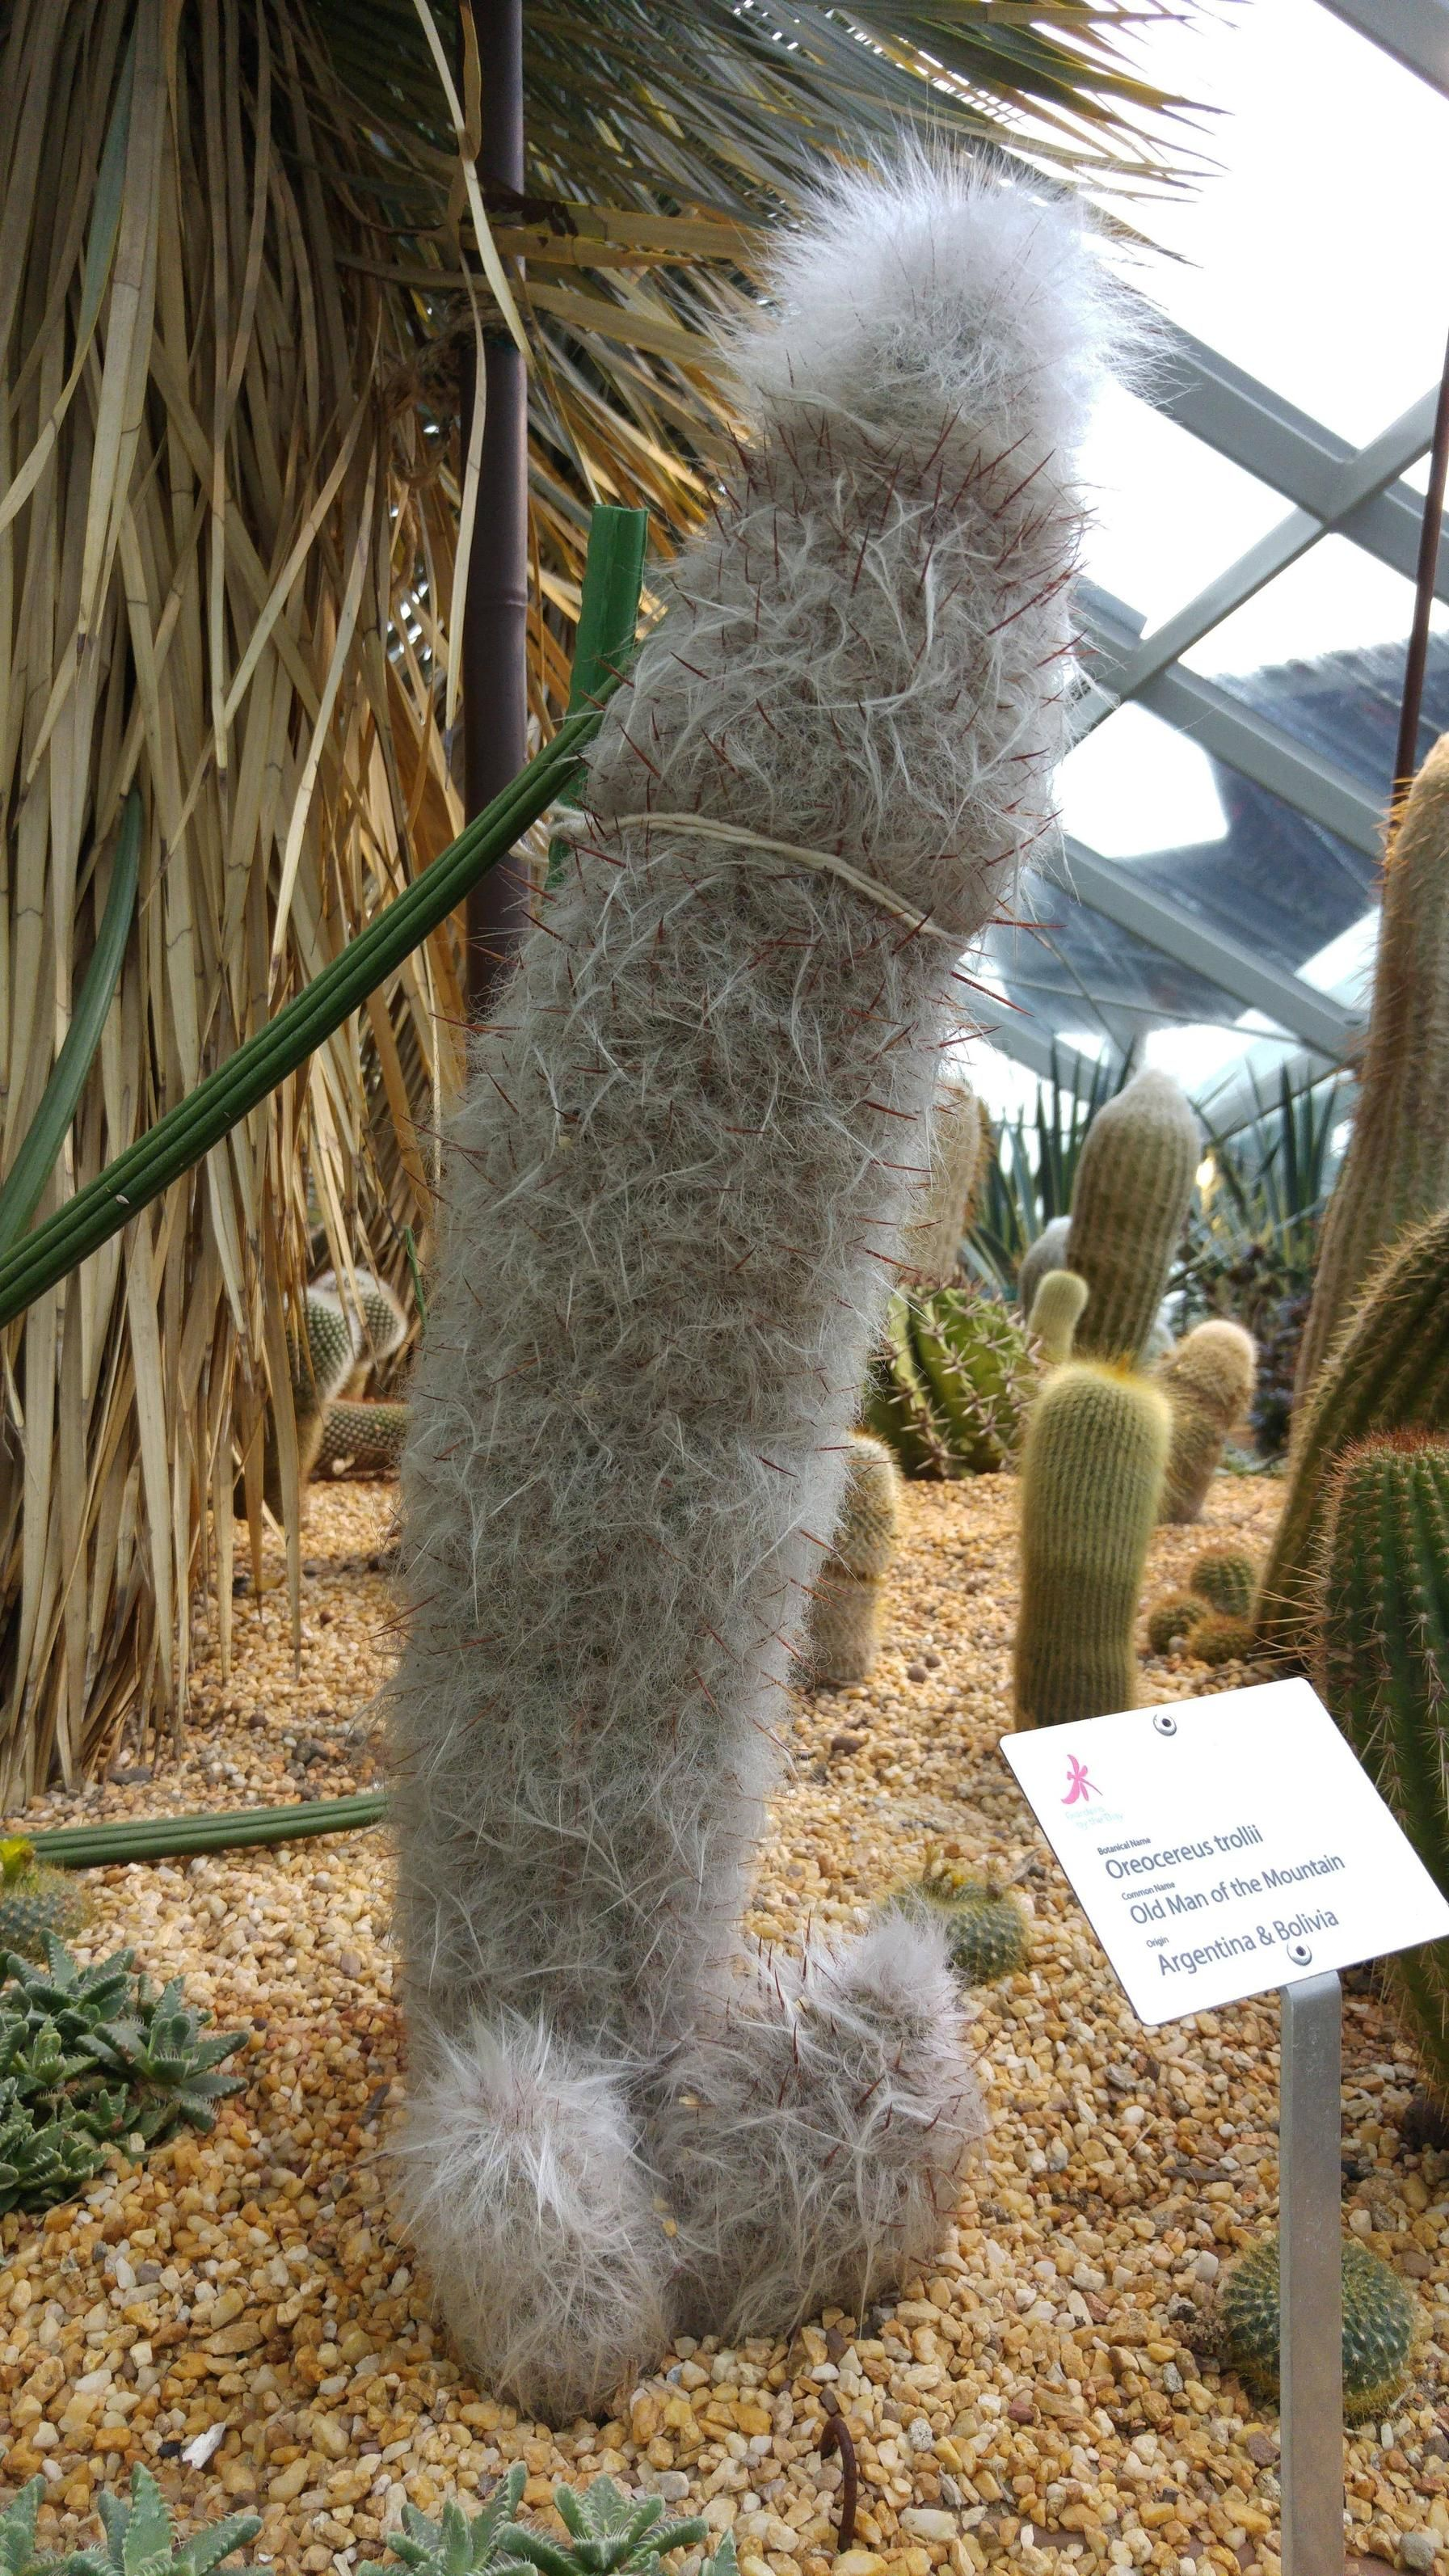 This cactus is called